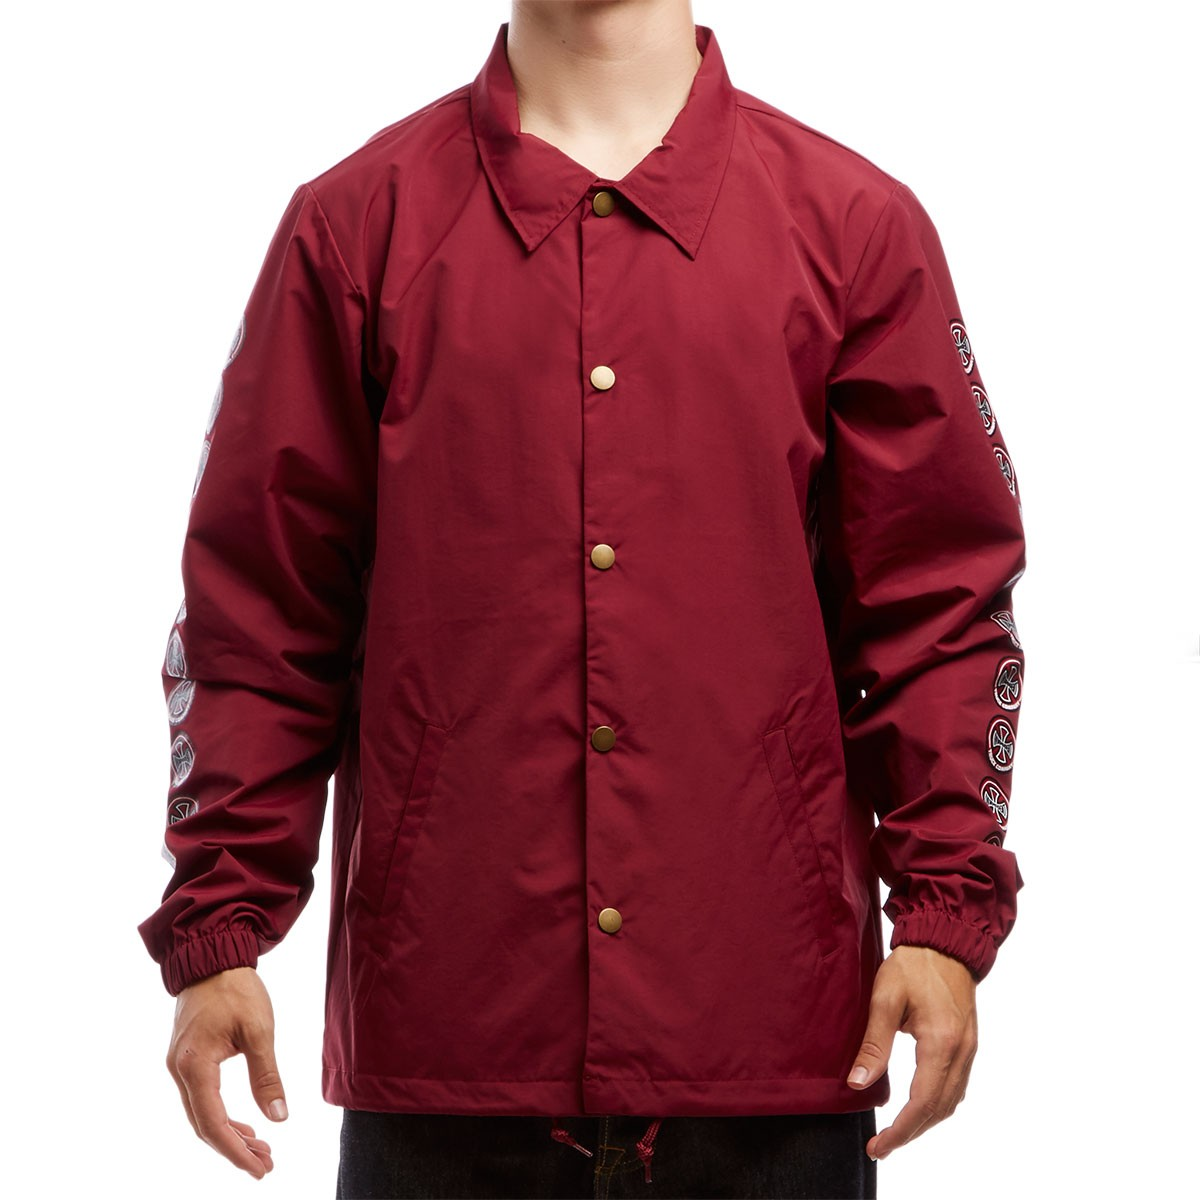 Independent Quatro Coach Windbreaker Jacket - Cardinal